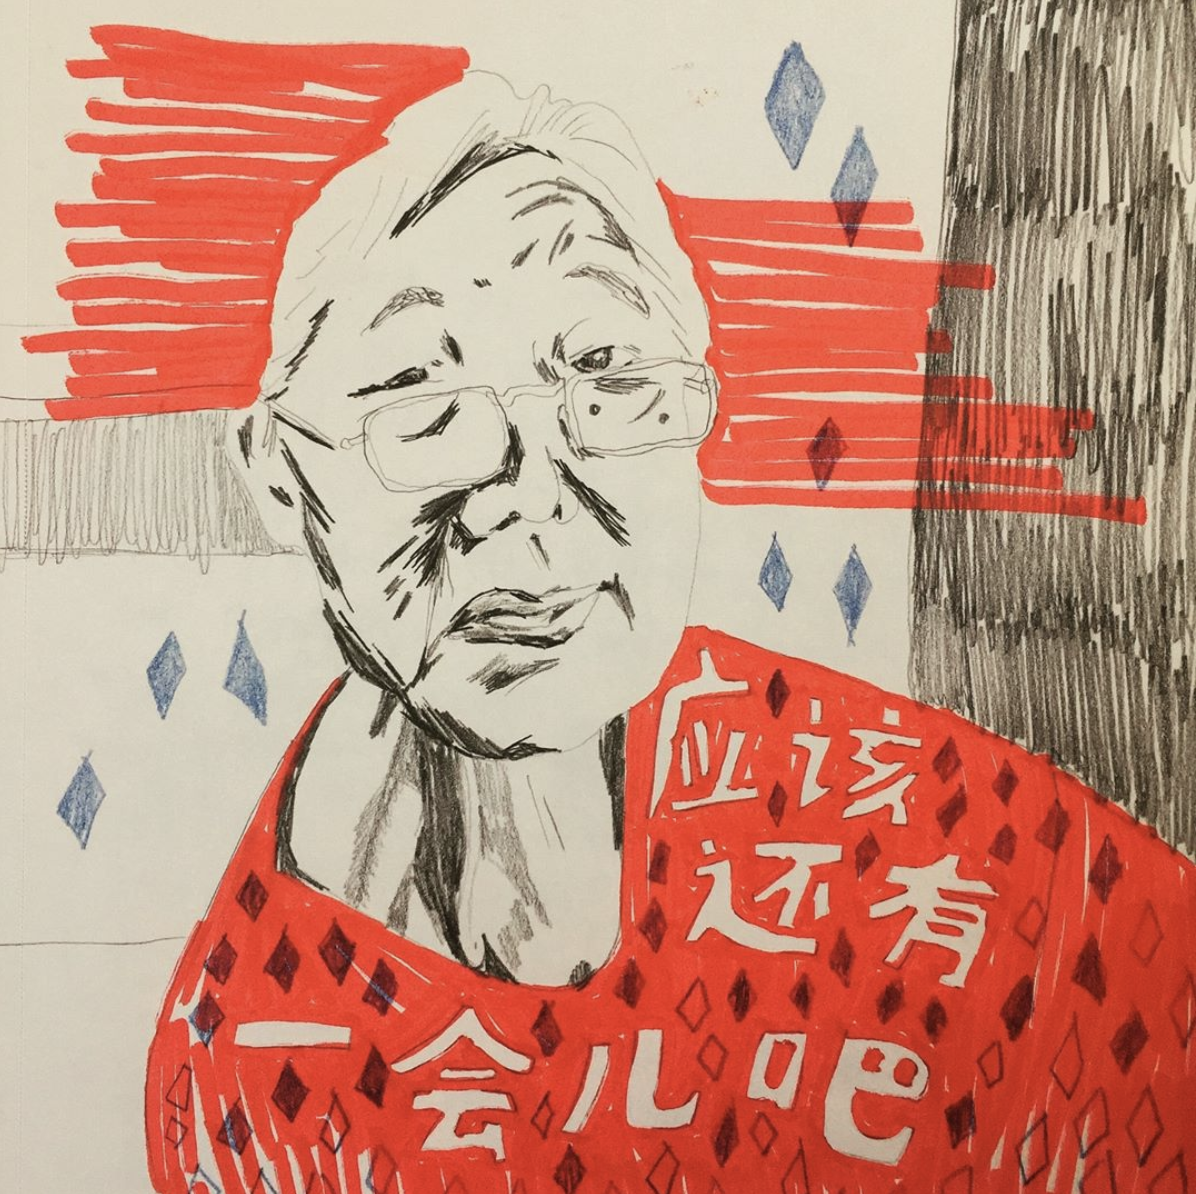 Pictured: Lily Xie's art piece about the inter-generational gap between Asian grandparents and AAPI grandchildren. An elderly woman is illustrated with words on her right shoulder:  应该还有一会儿吧?  (translation: there should still be some time left, right?)  Source:  https://www.instagram.com/p/BtG1JXnnED5/